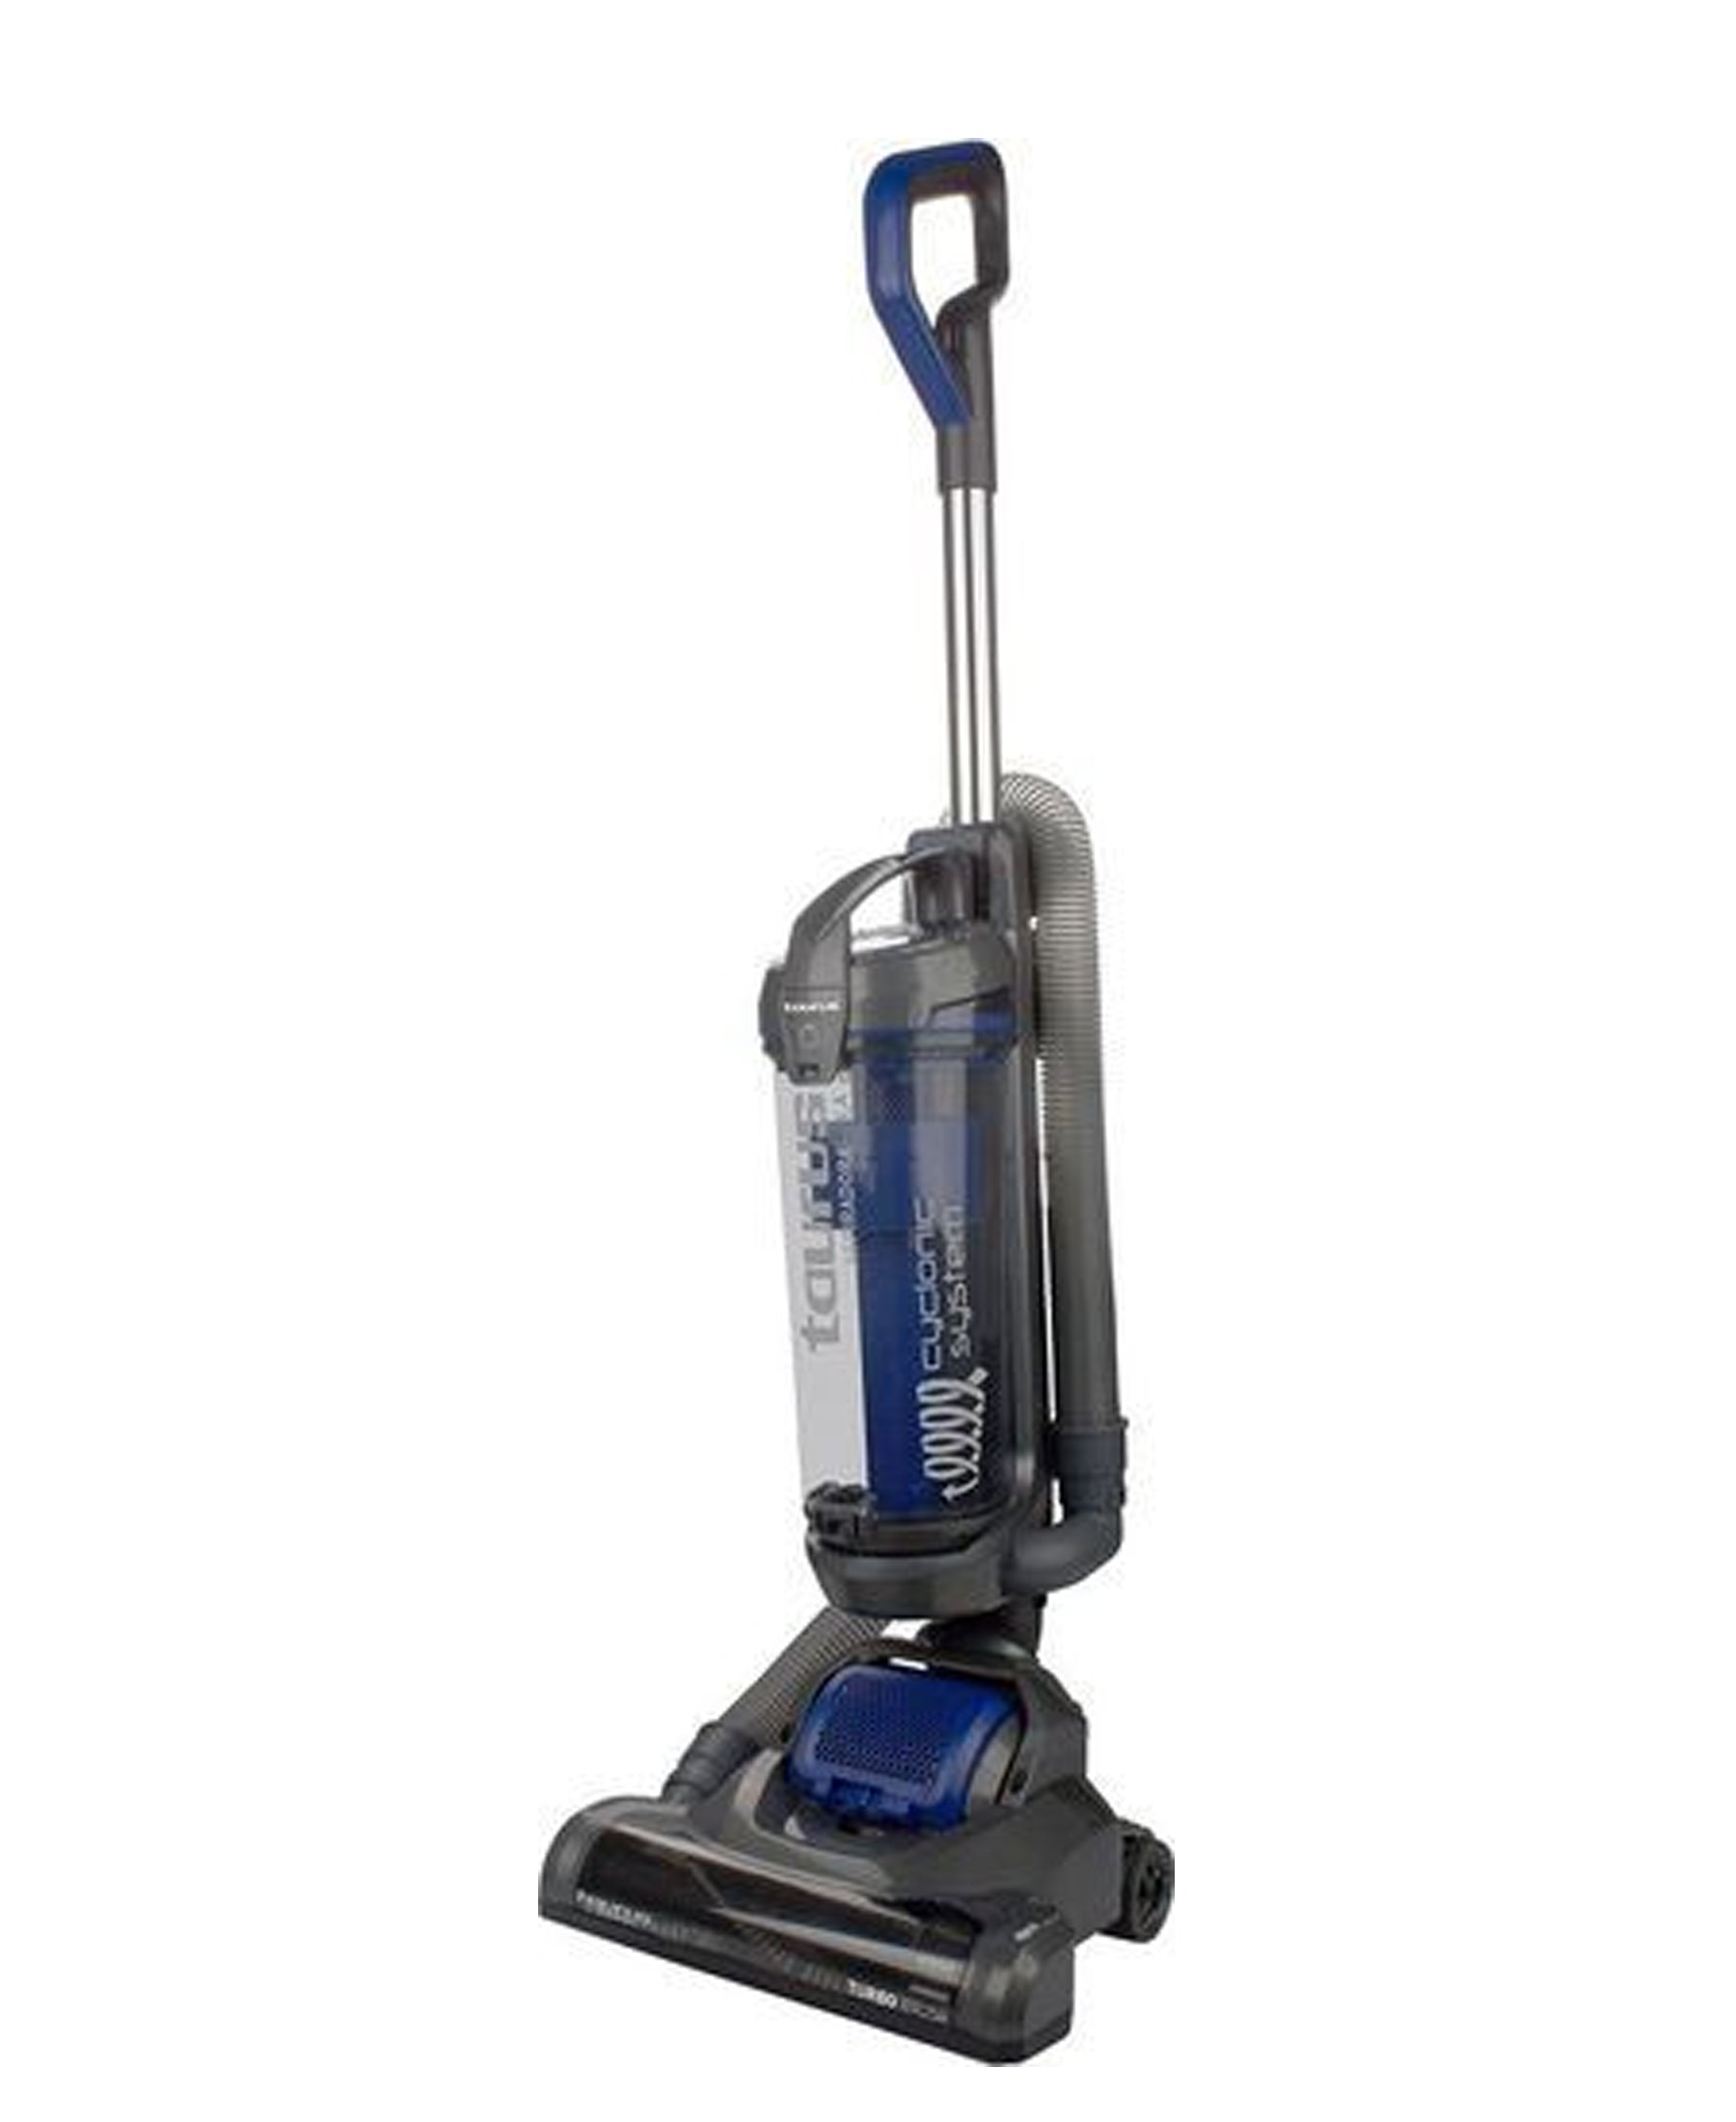 Taurus Cyclone Upright Cordless Vacuum Cleaner Blue